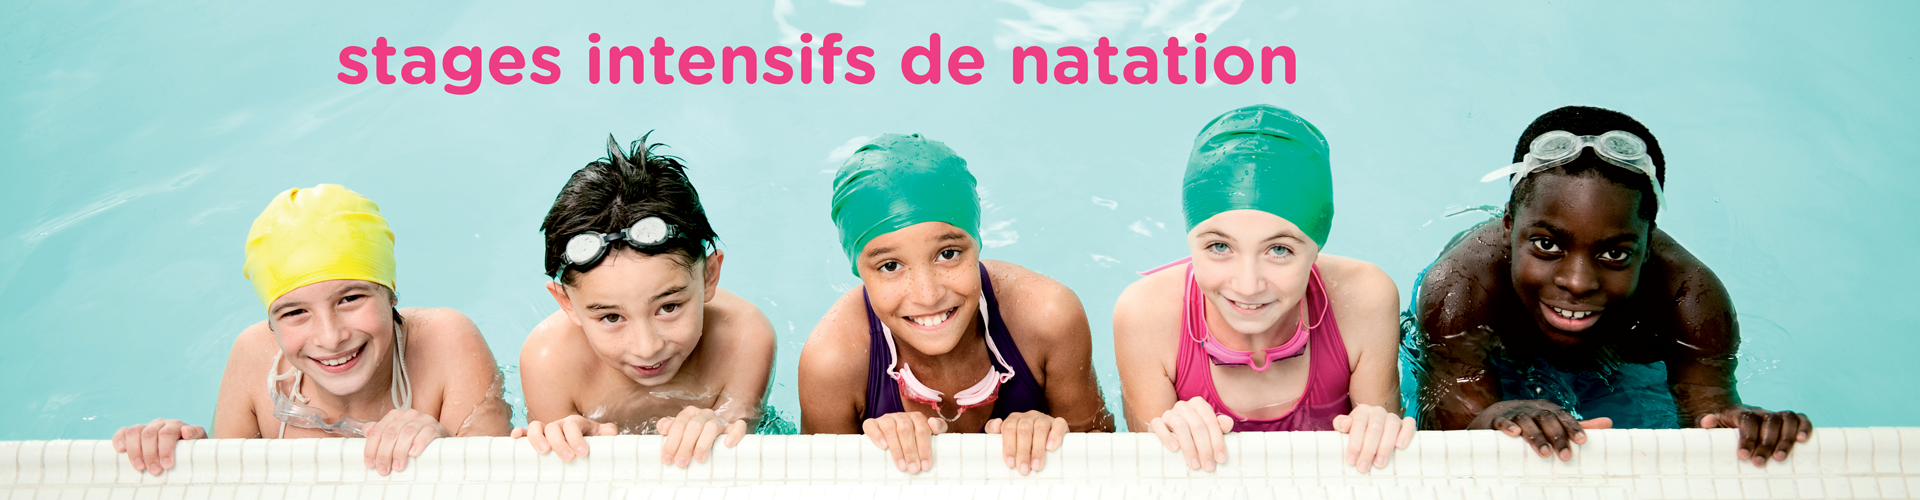 stages intensifs de natation